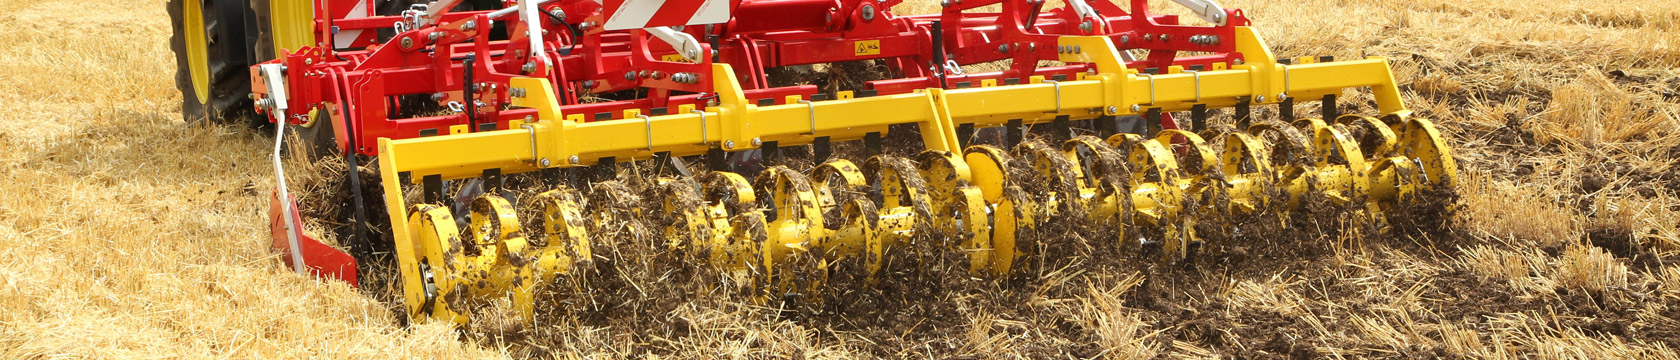 SYNKRO 3–row stubble cultivator